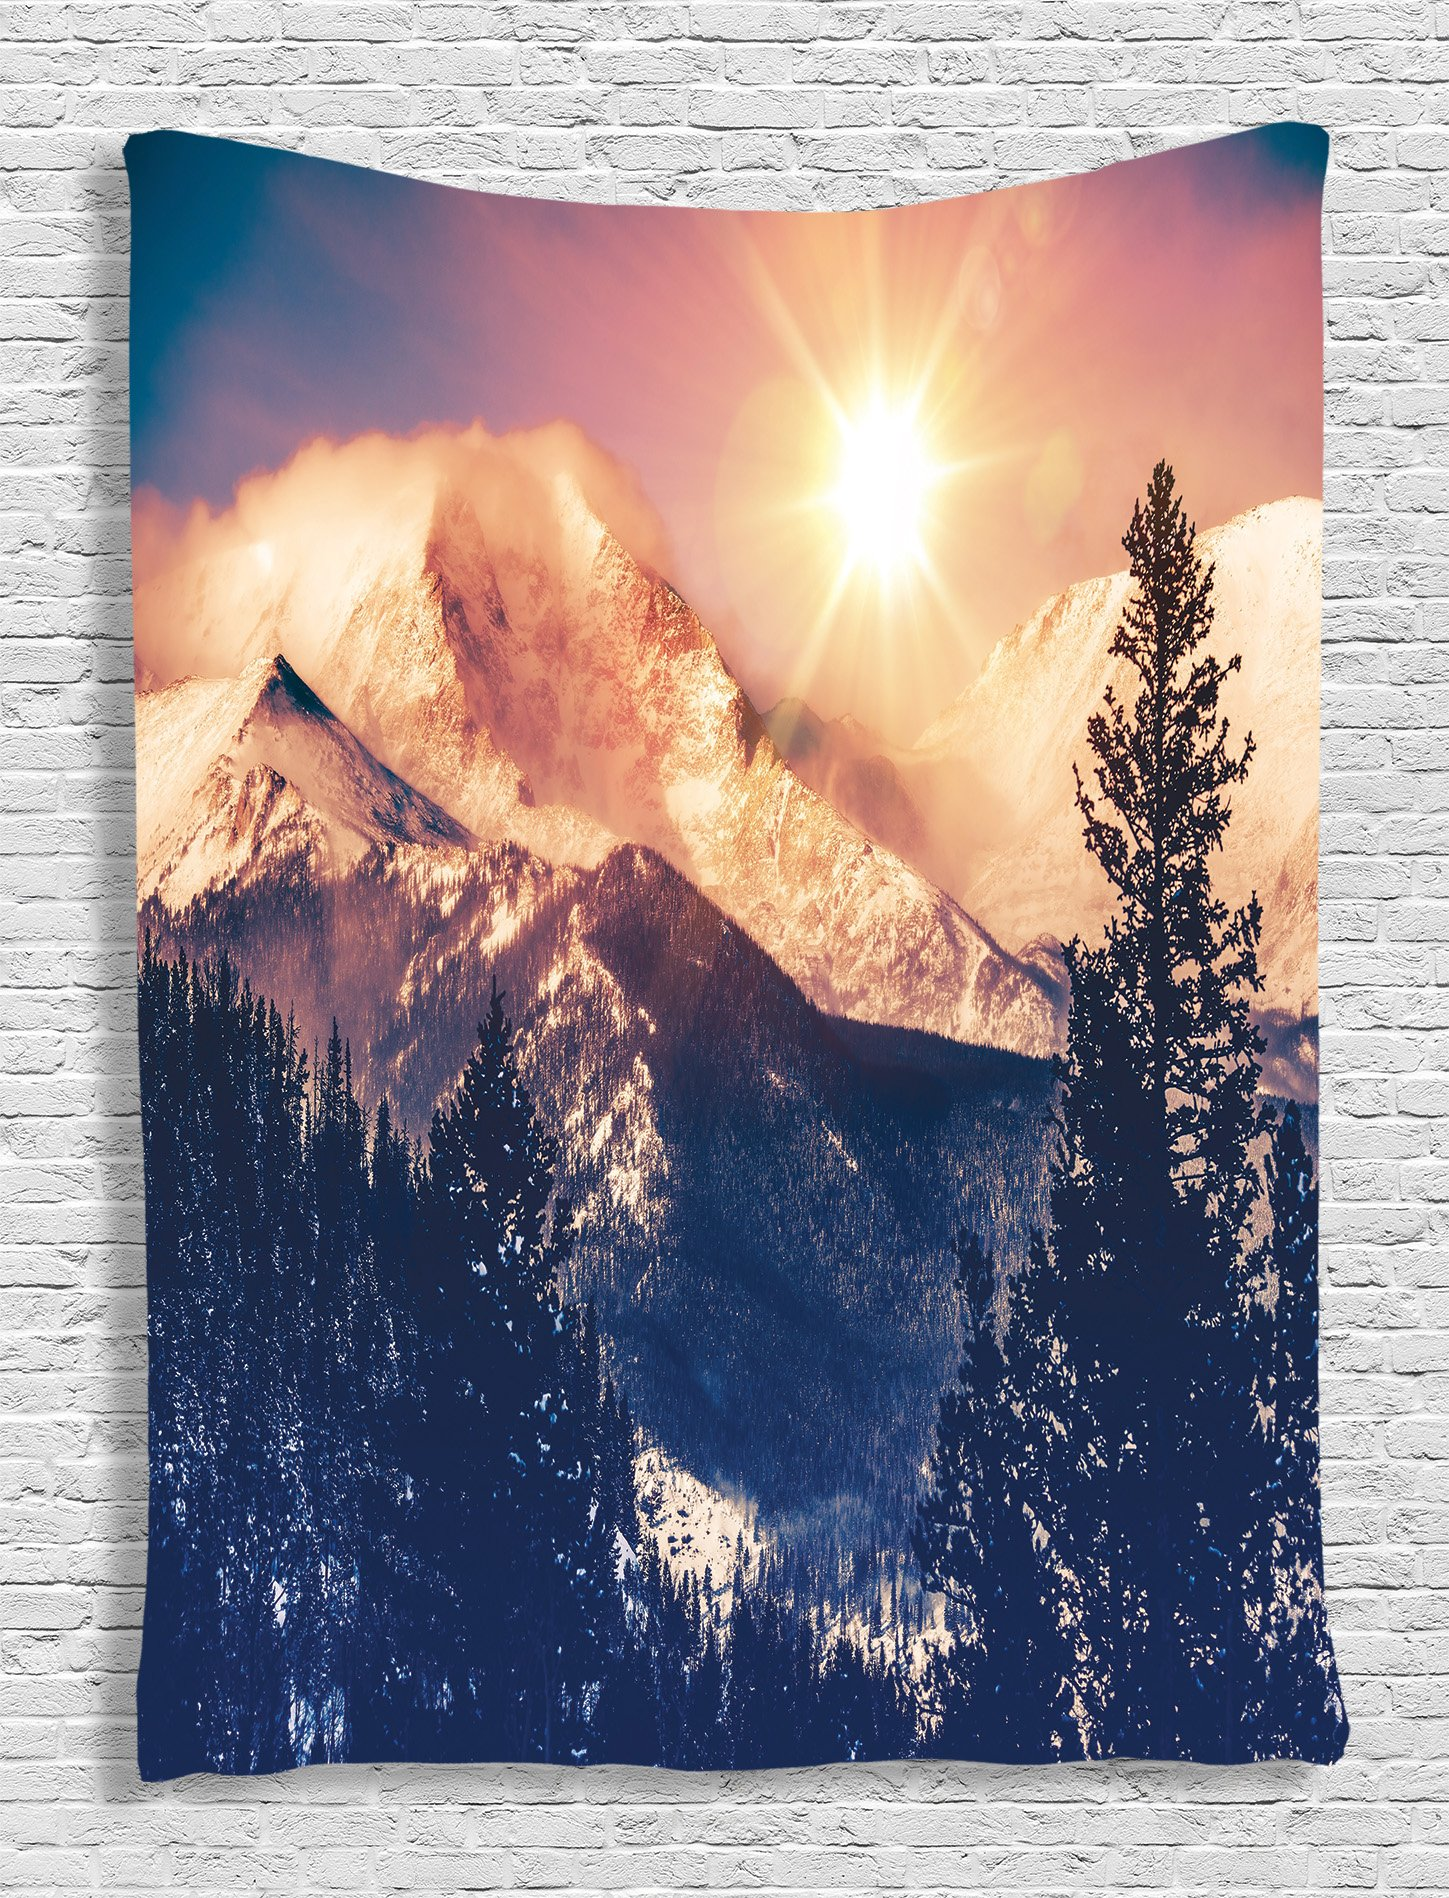 Ambesonne USA Nature Decor Collection, Mountains in Coloradao Bright Sun Snowy Hill View Print, Bedroom Living Kids Girls Boys Room Dorm Accessories Wall Hanging Tapestry, Blue White Black